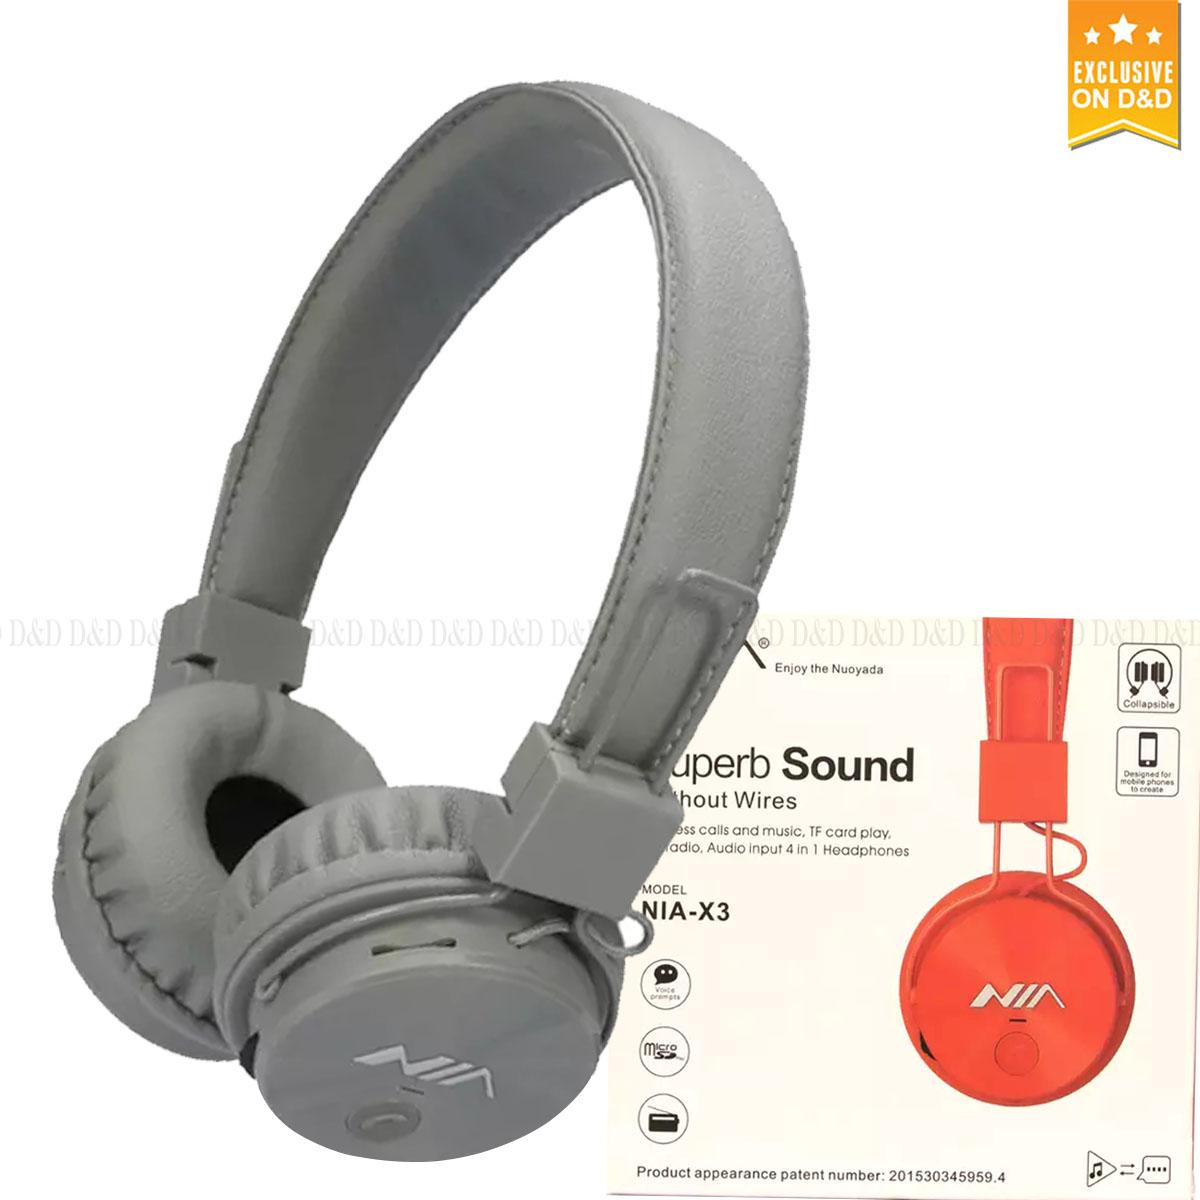 Headphones For Sale Bluetooth Prices Brands Specs In Apple Lightning To 35 Mm Headphone Jack Adapter Original Pack Nia X3 Wireless Stereo Foldable Sport Headsets With Mic Support Tf Card